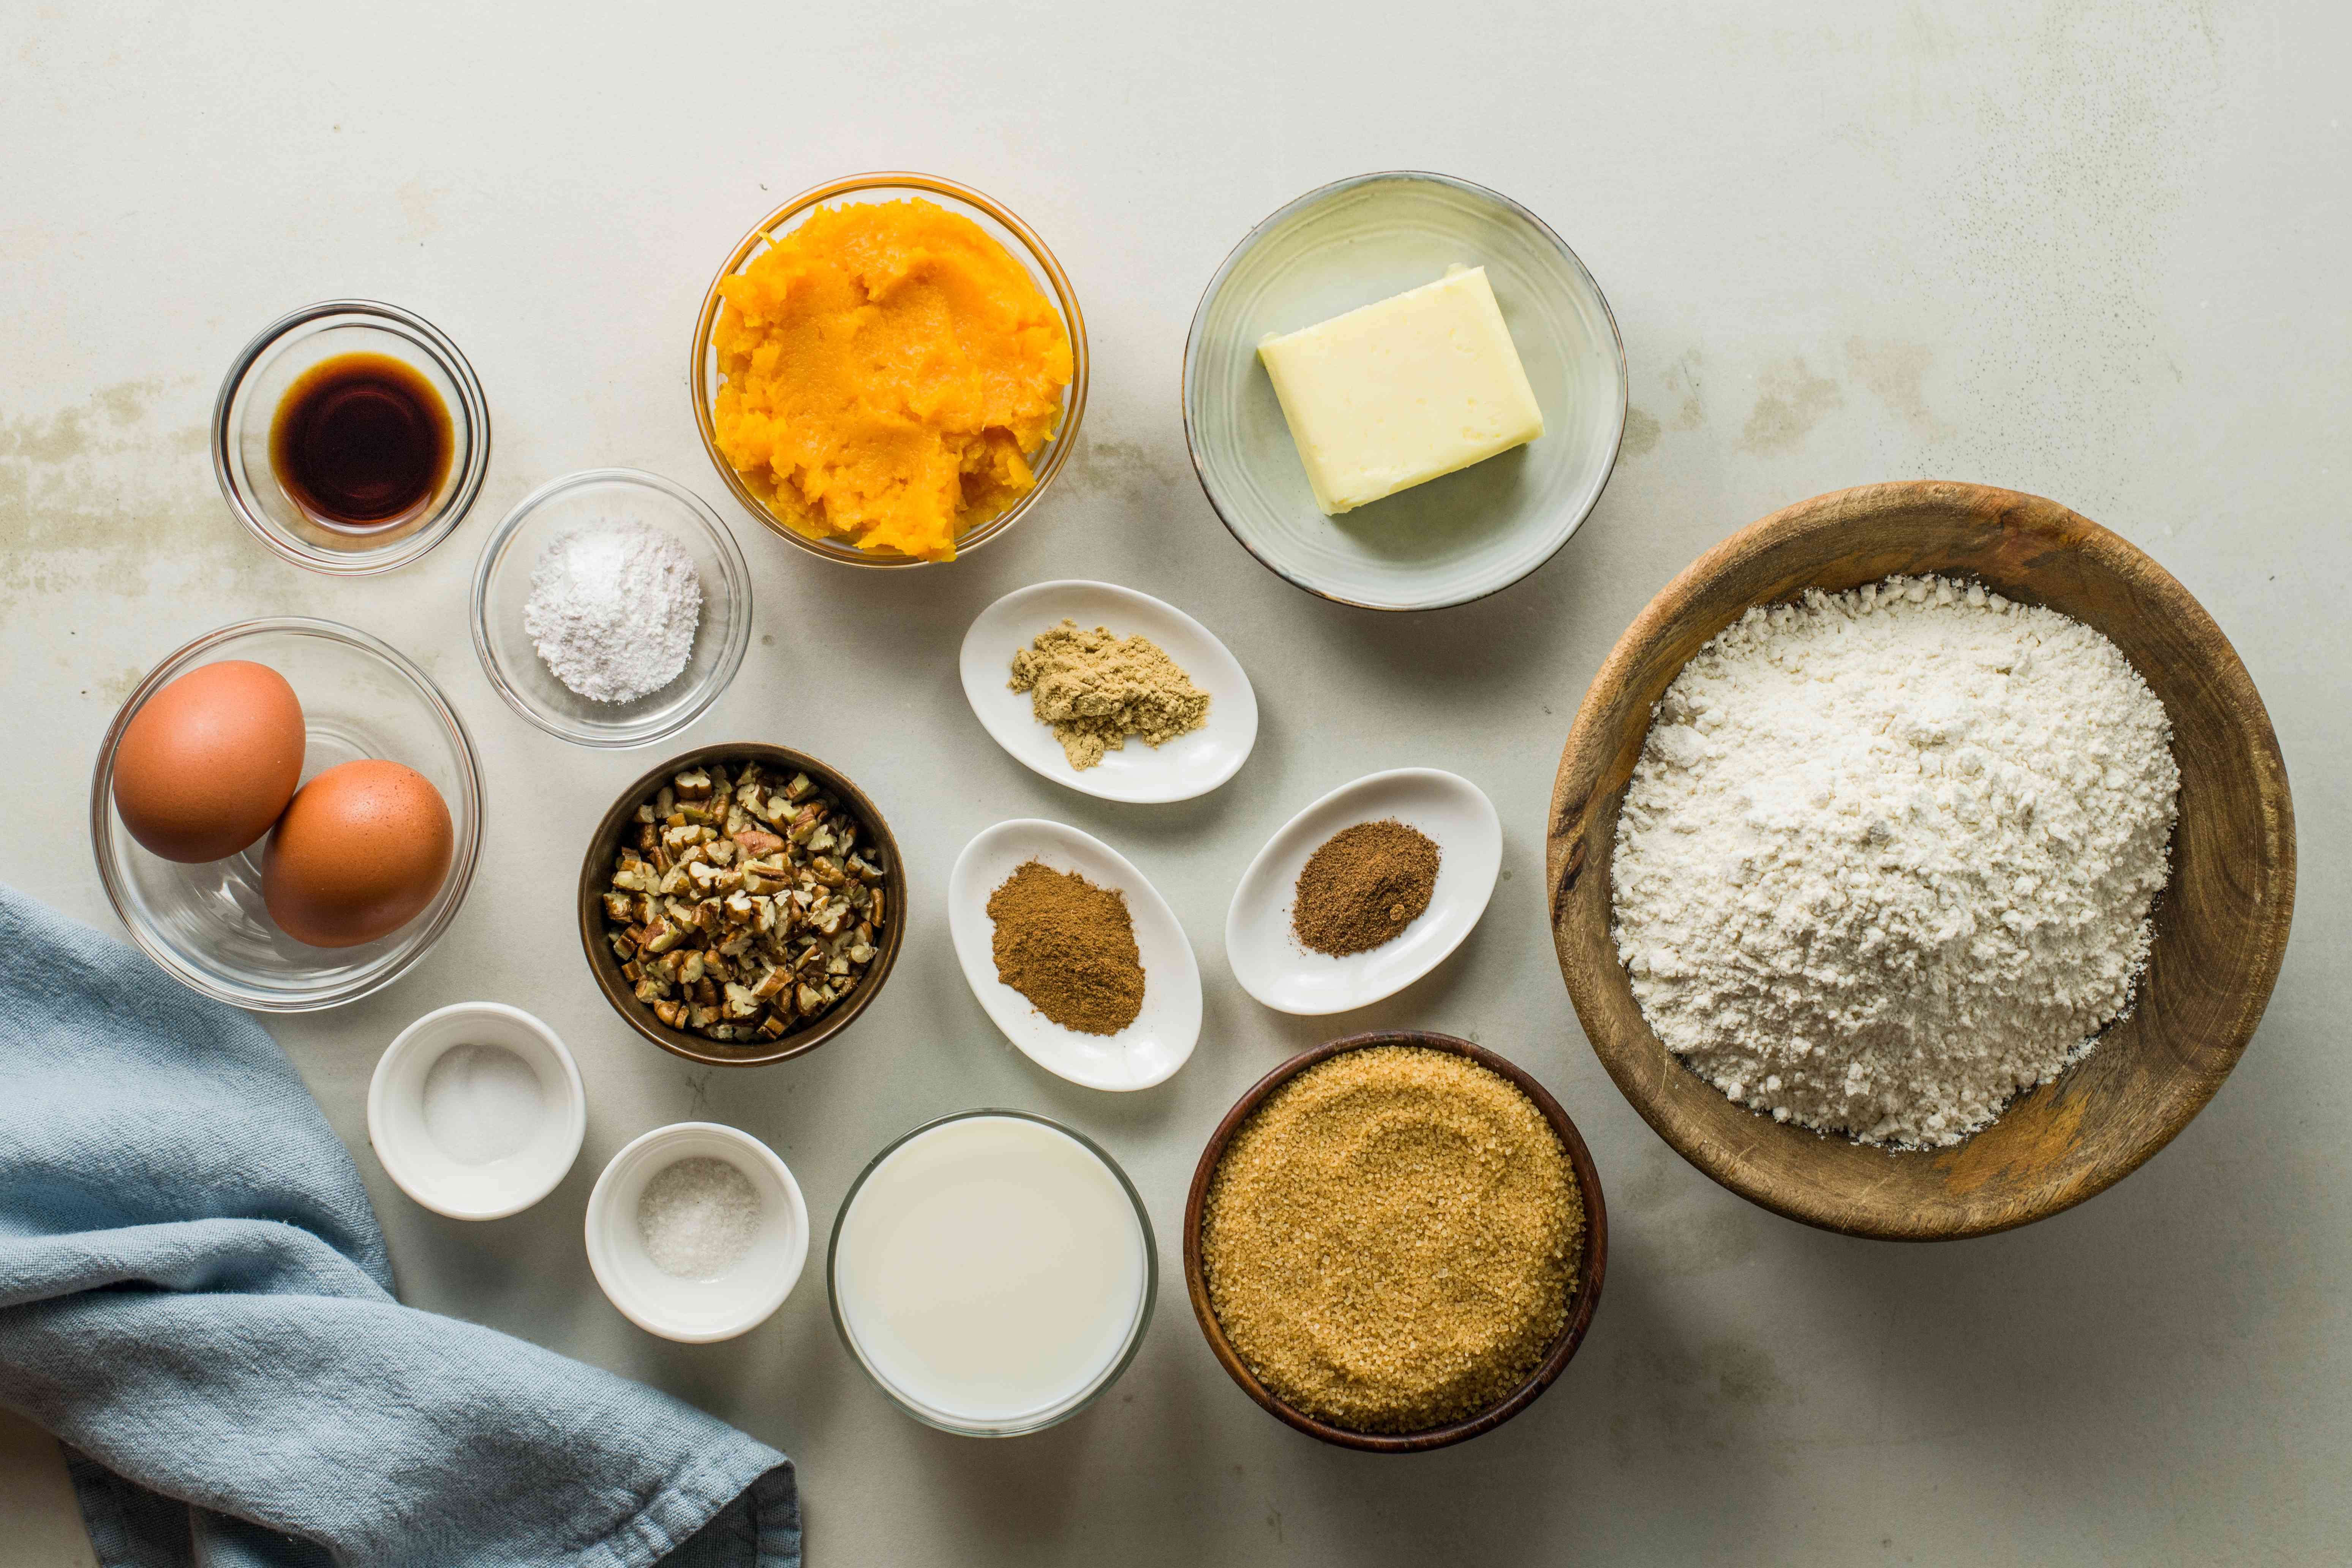 Ingredients for butternut squash cupcakes